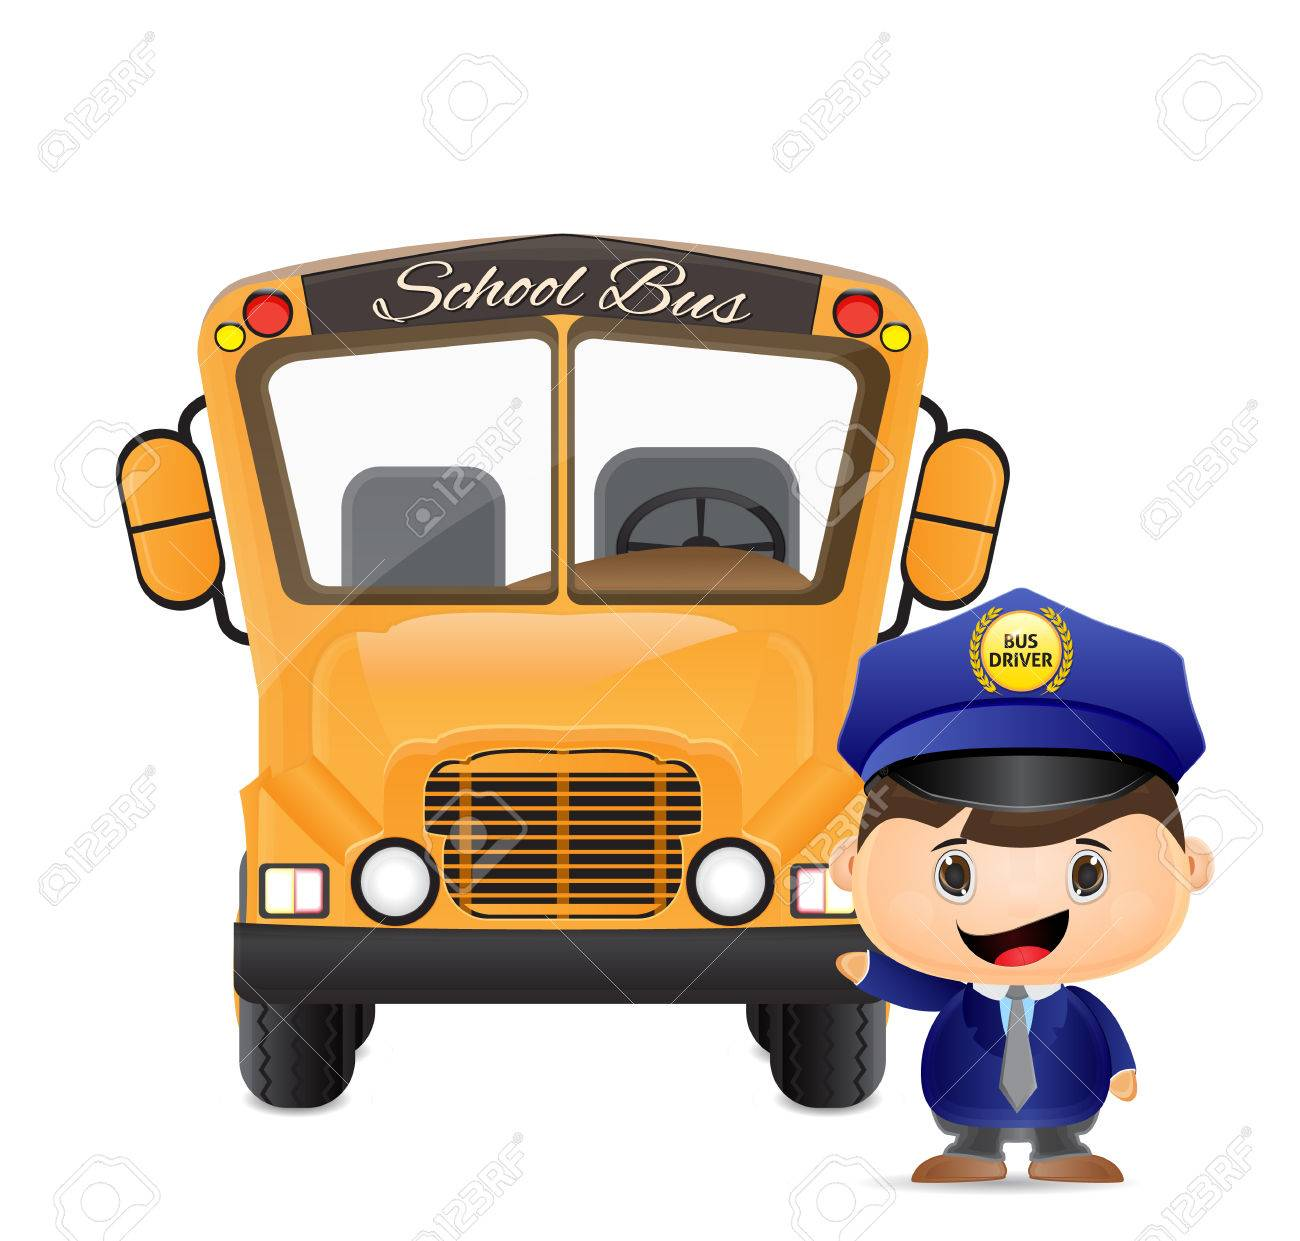 School Bus And Bus Driver Illustration Royalty Free Cliparts ...